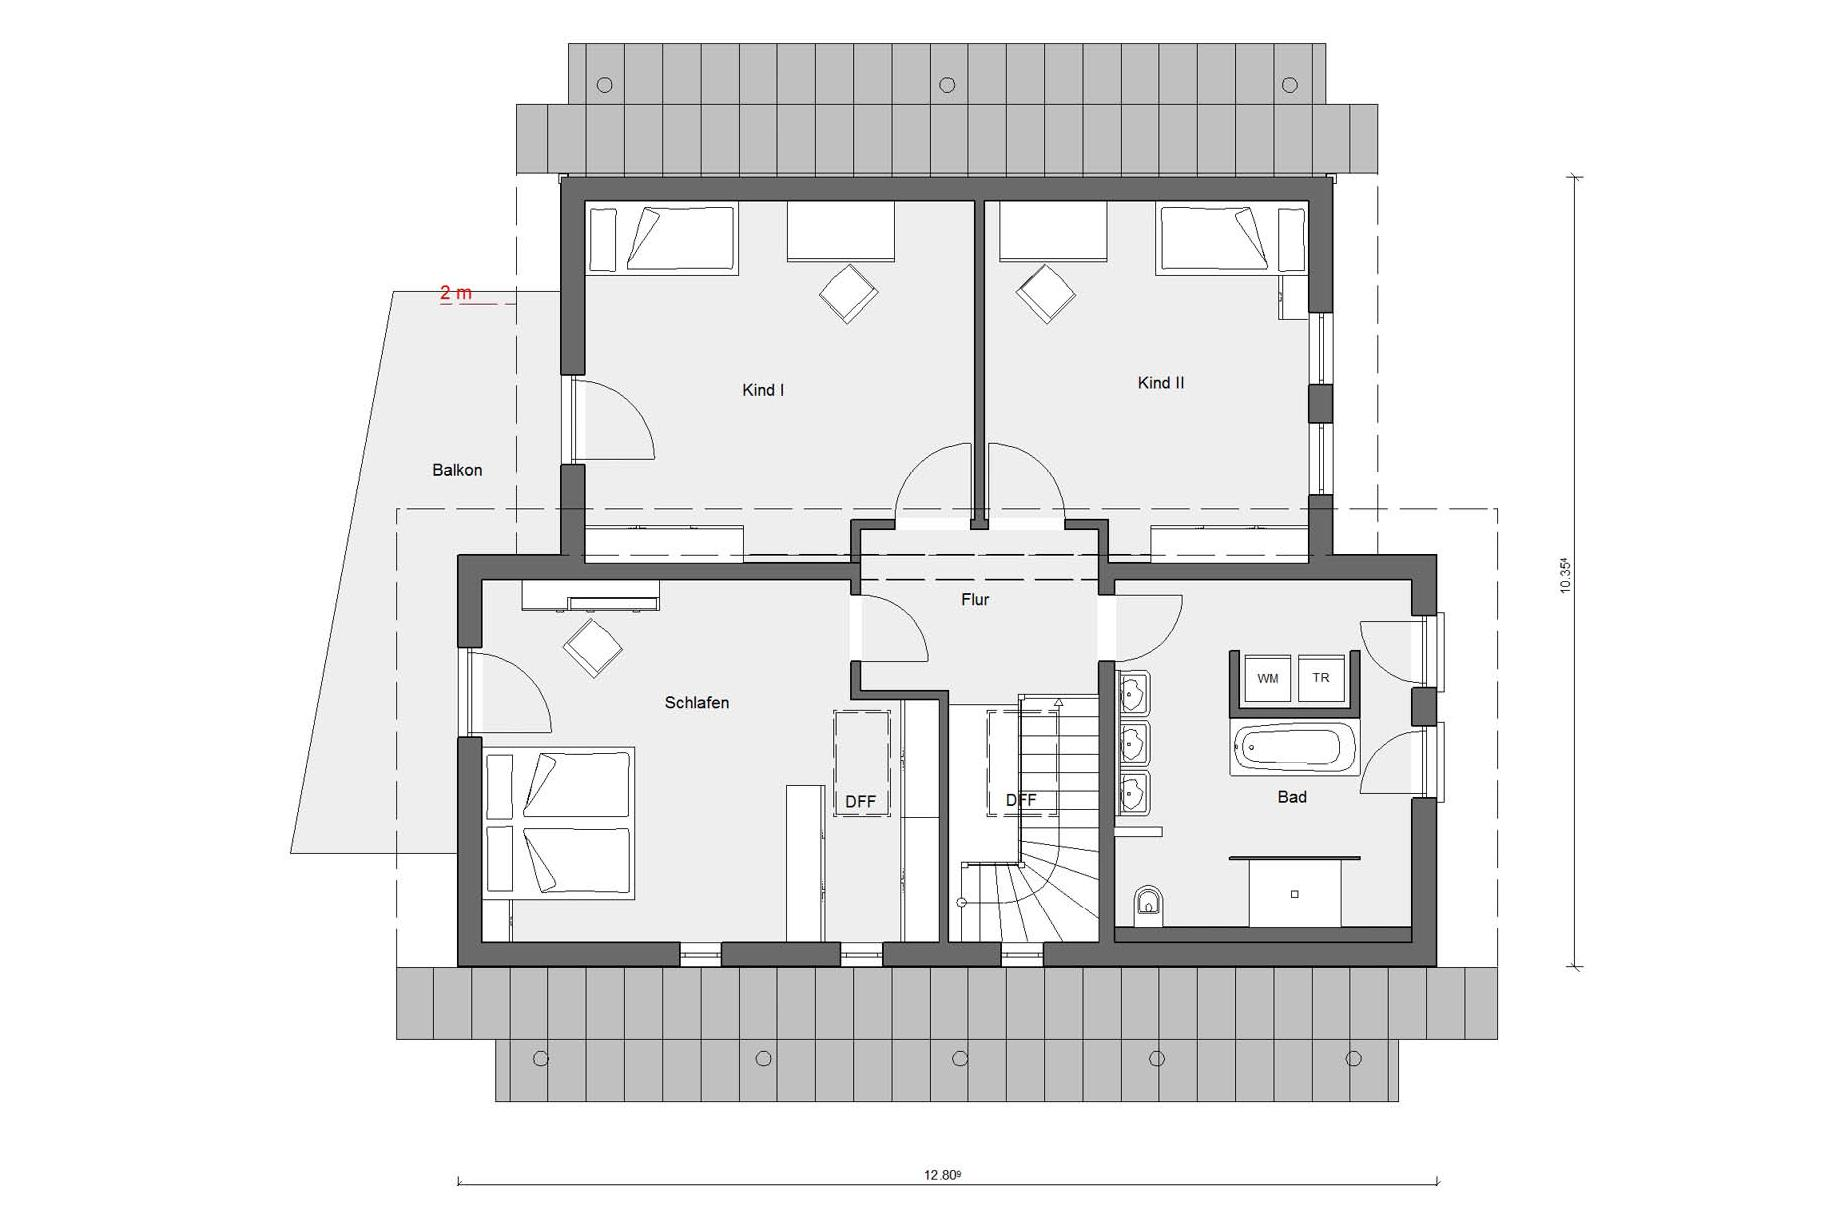 Pianta soffitta E 15-199.1 Youg Family Home 2